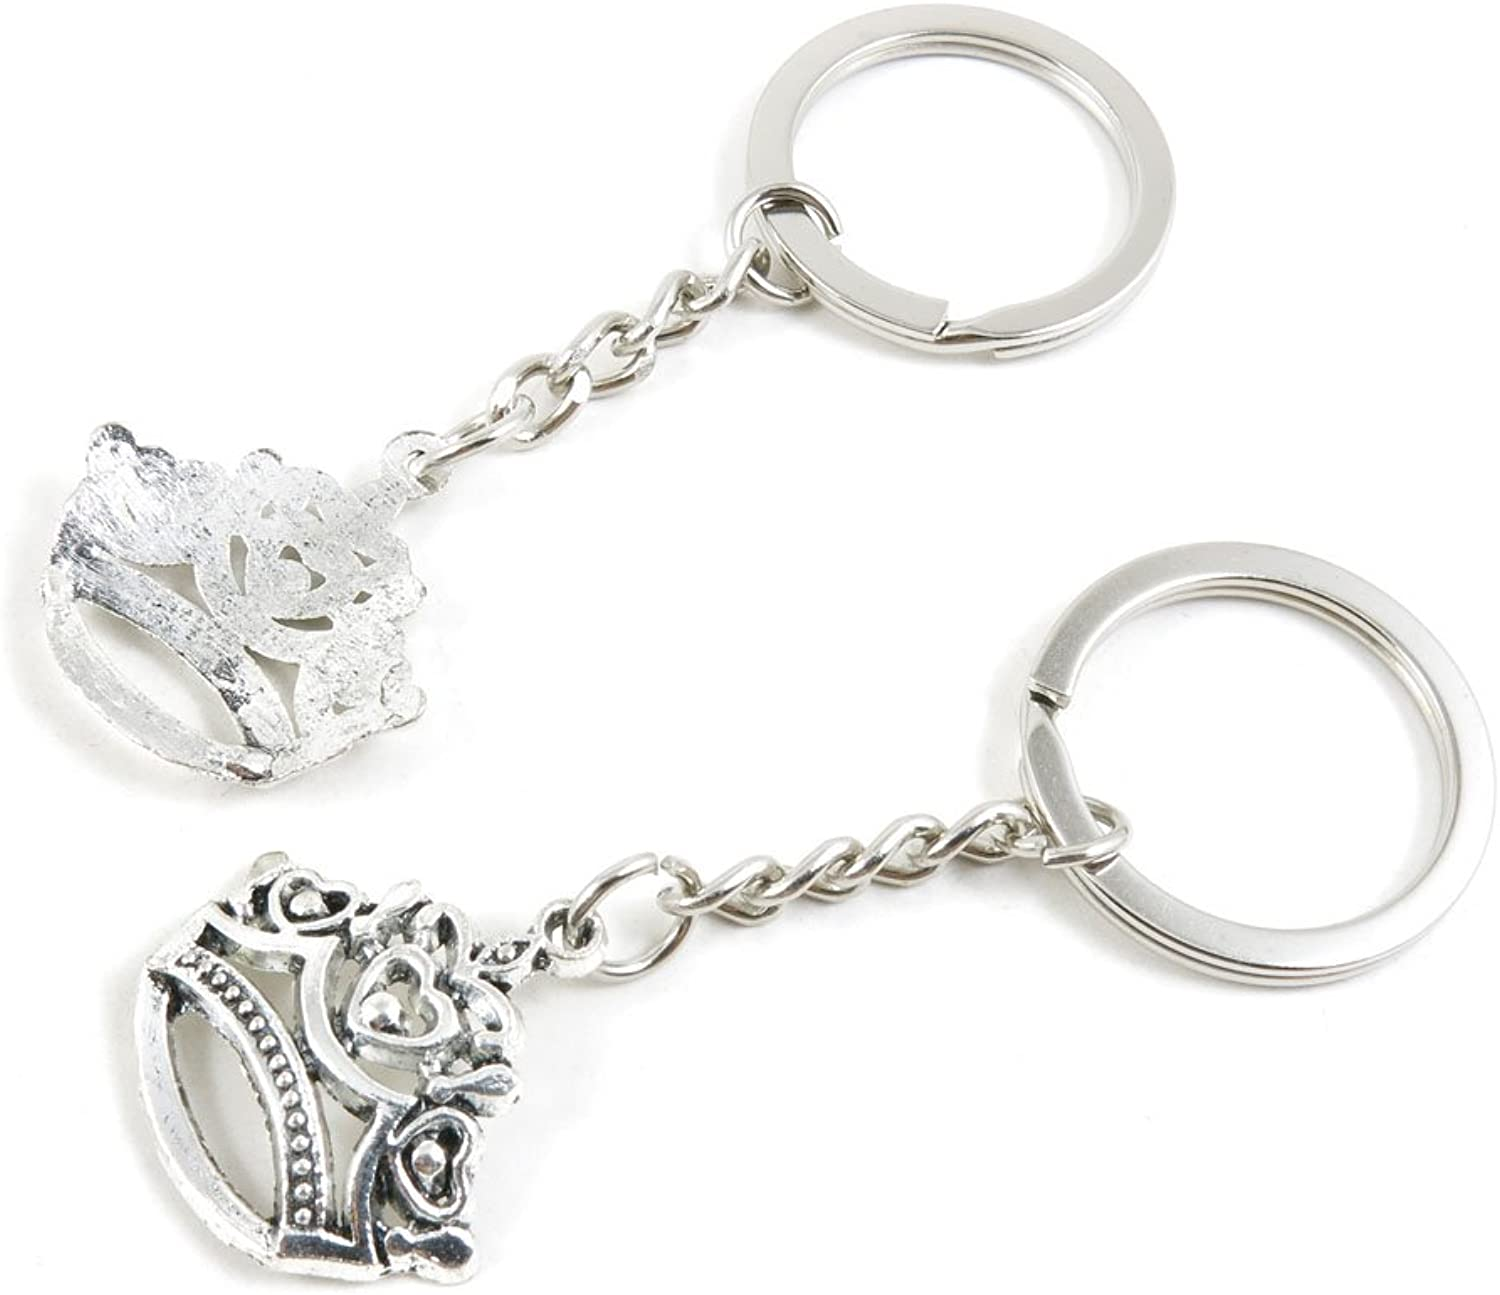 100 Pieces Keychain Keyring Door Car Key Chain Ring Tag Charms Bulk Supply Jewelry Making Clasp Findings T5QM2G Crown